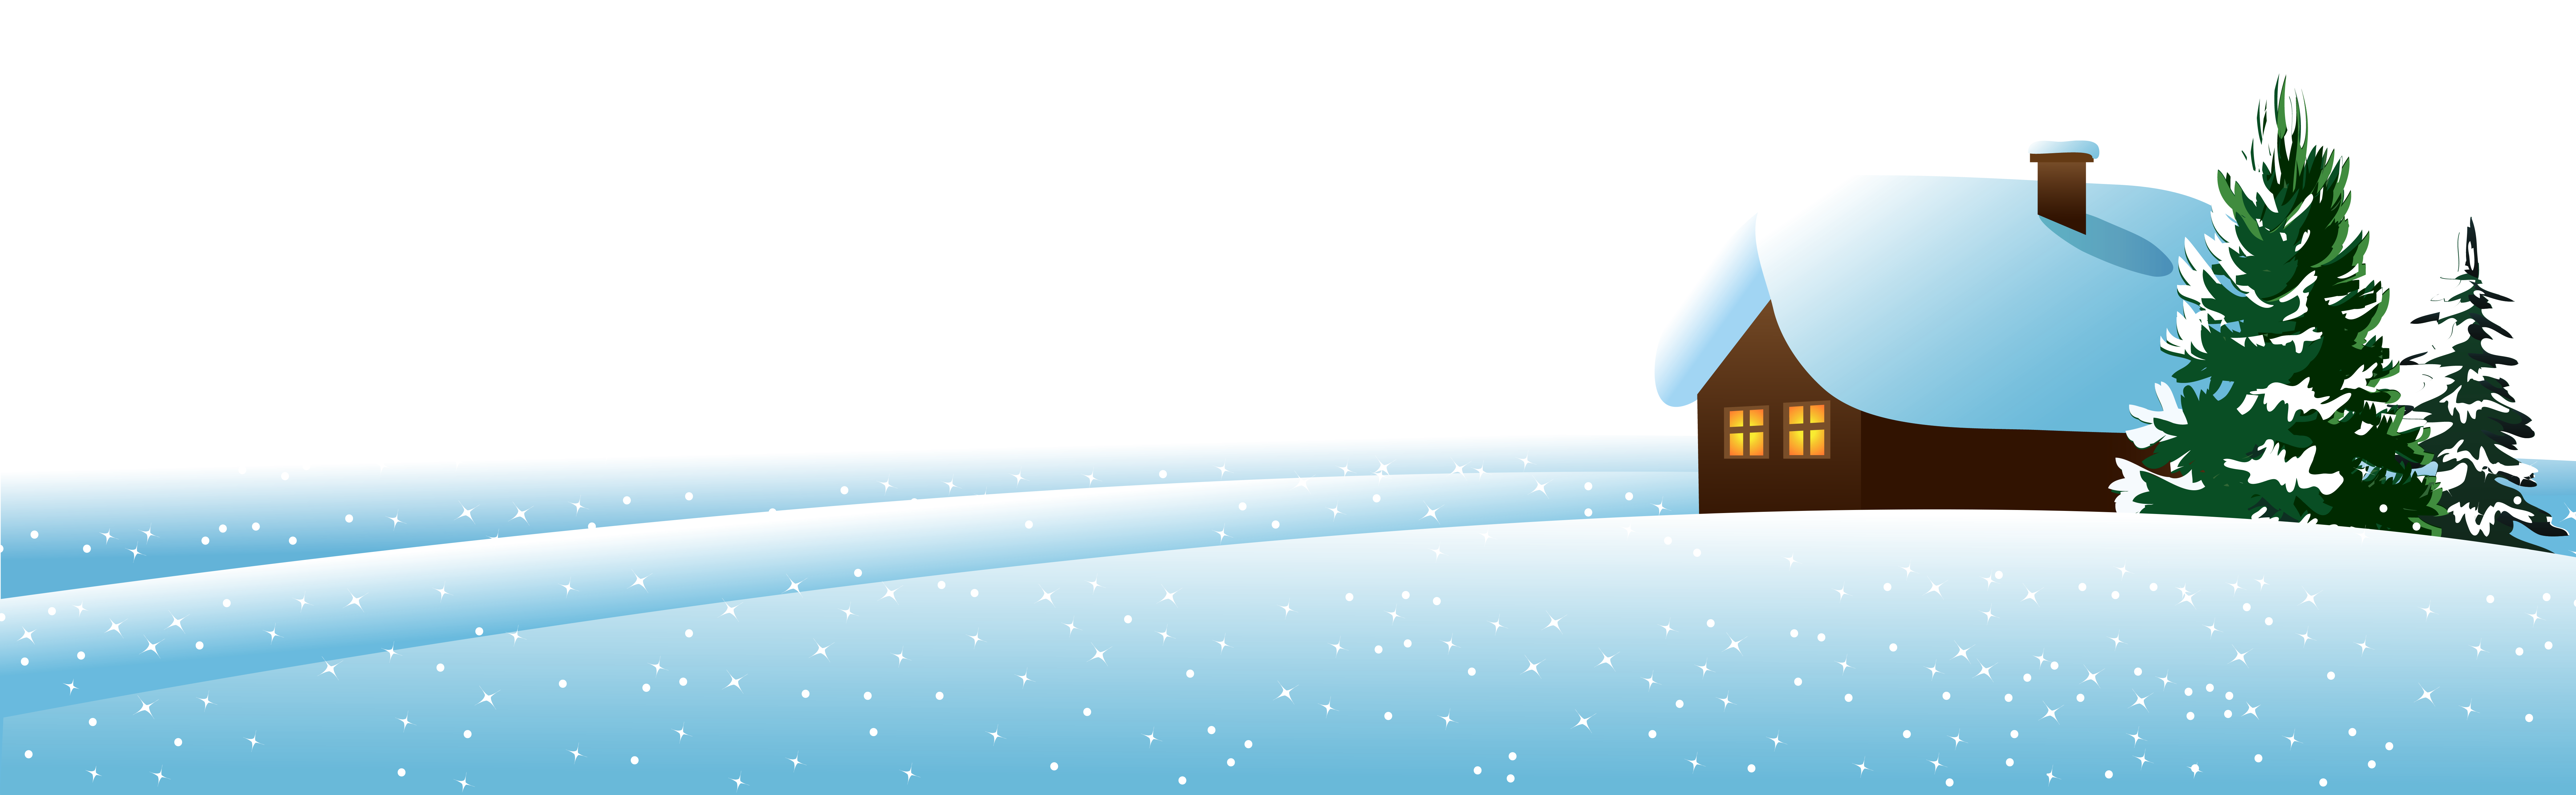 Winter House and Тrees Ground PNG Clipart Image.